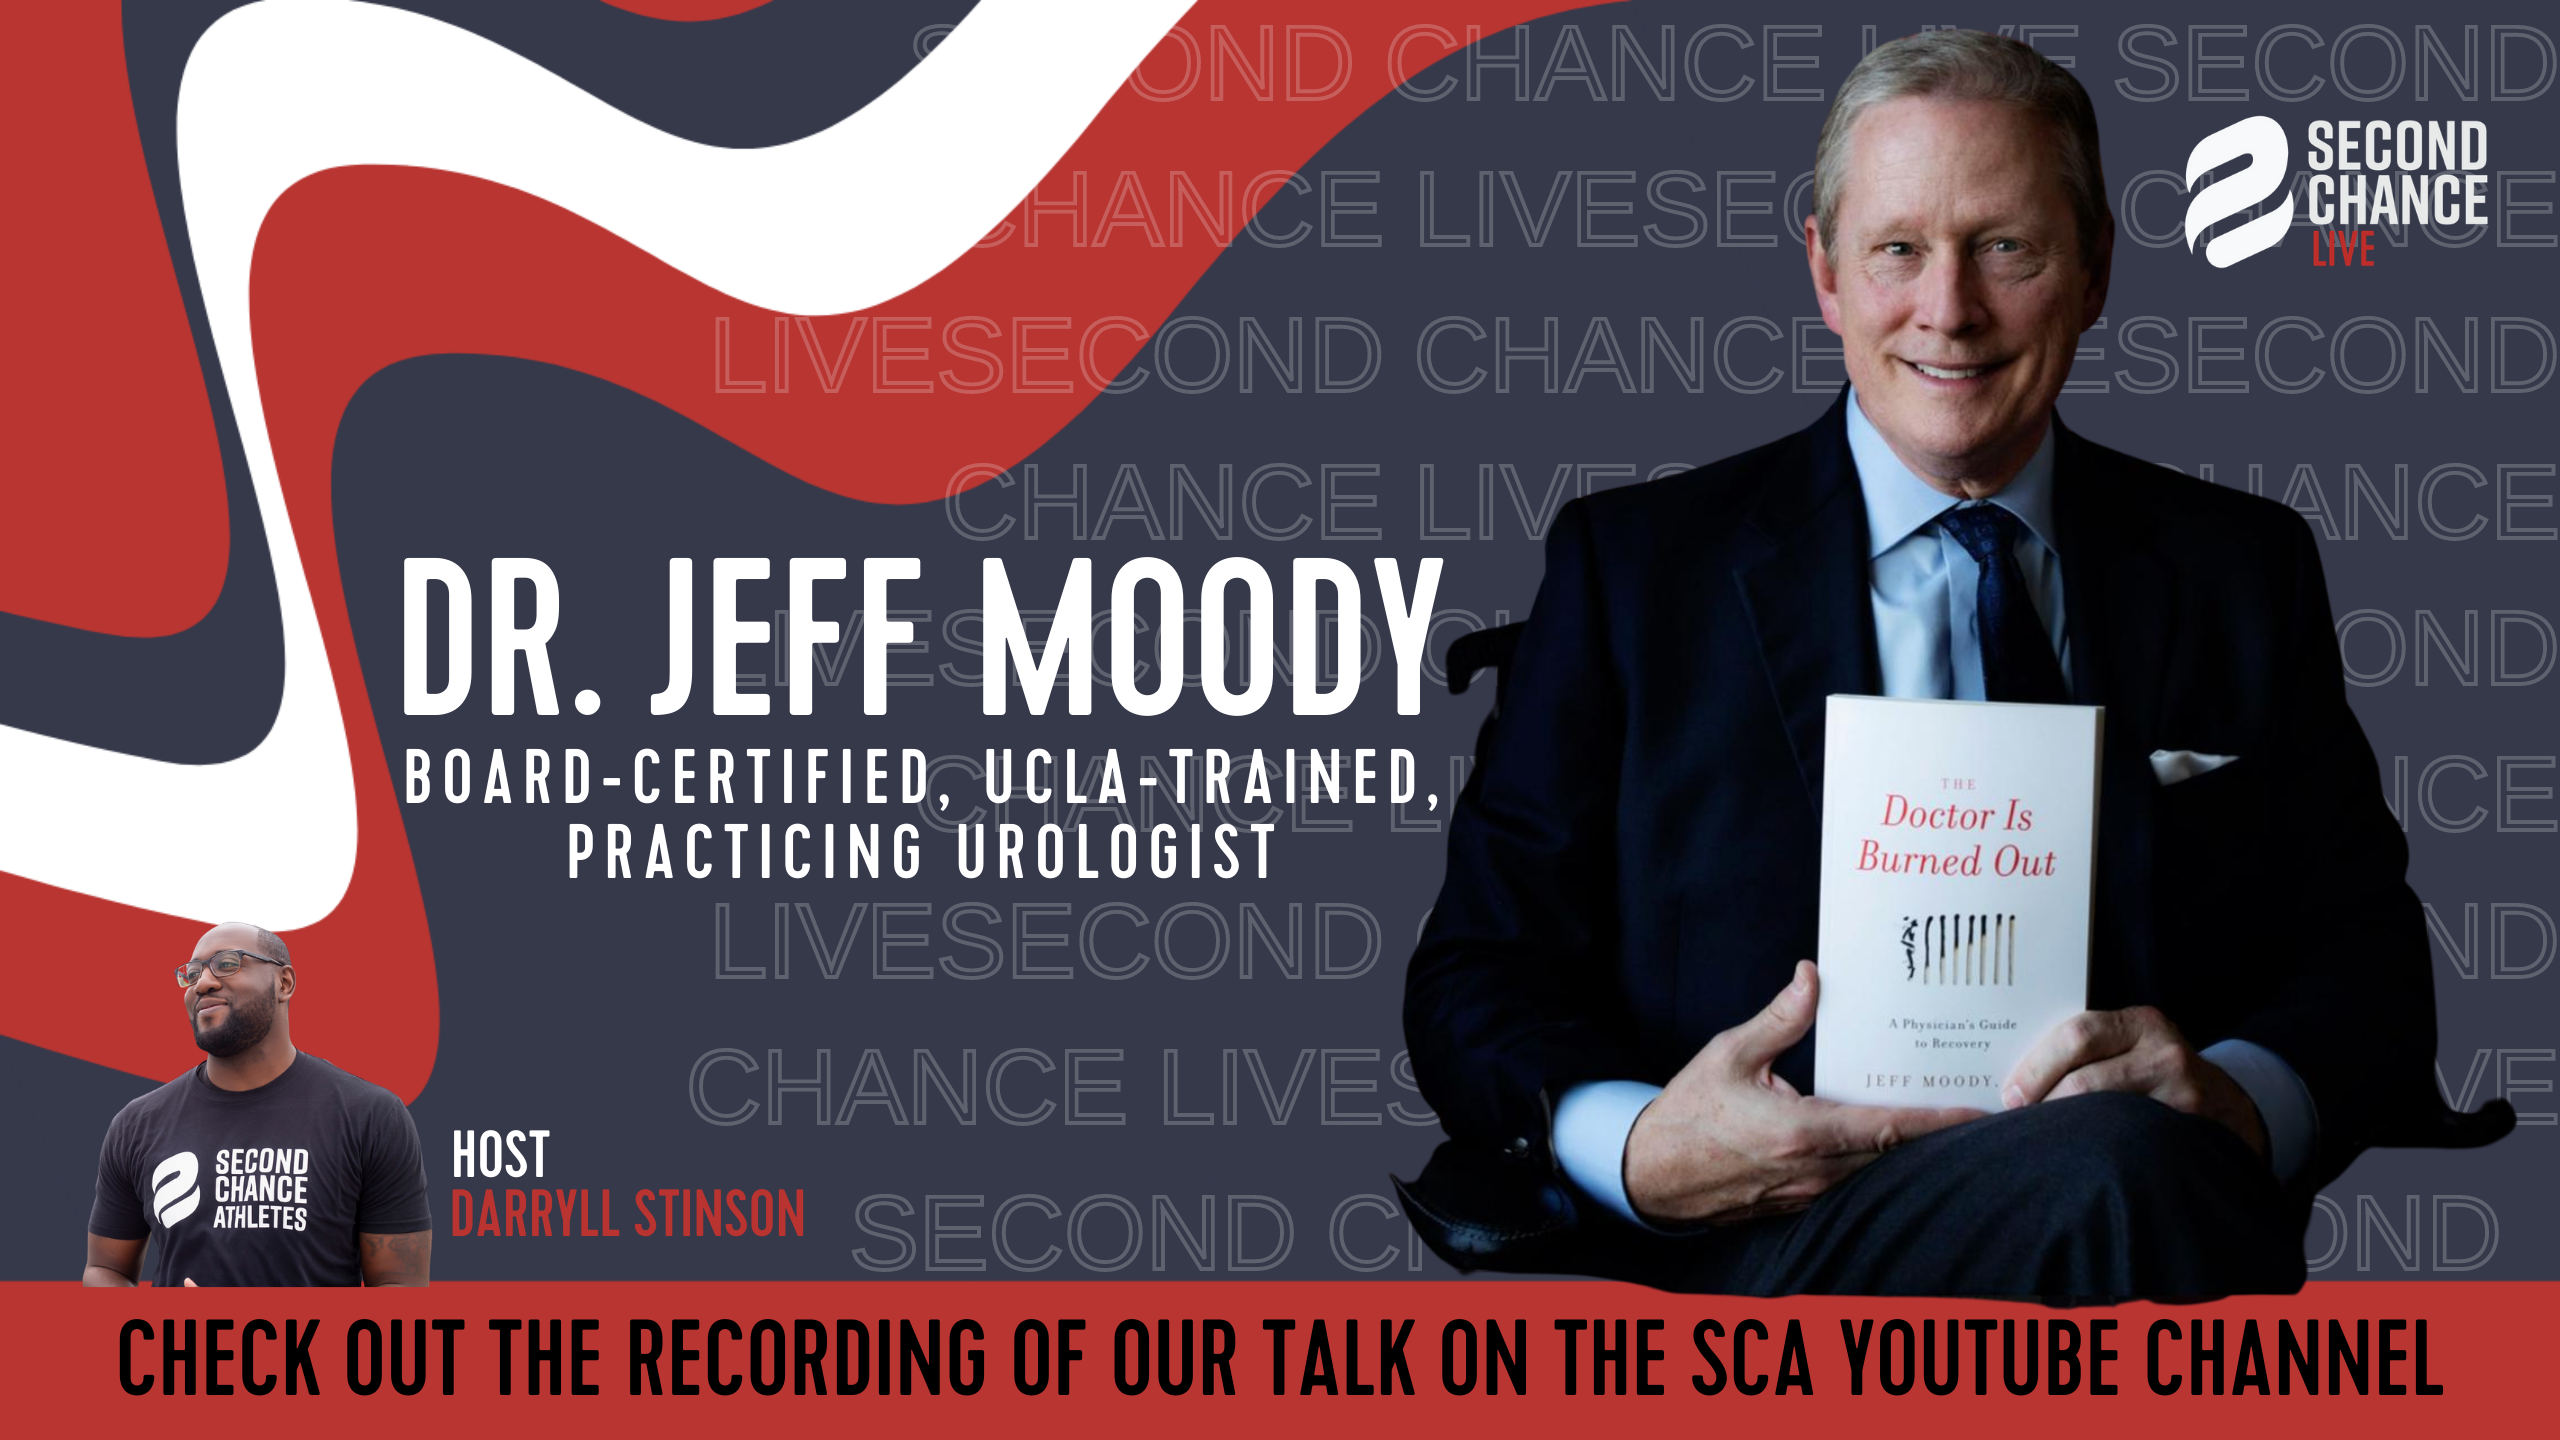 Second Chance LIVE -with Dr. Jeff Moody